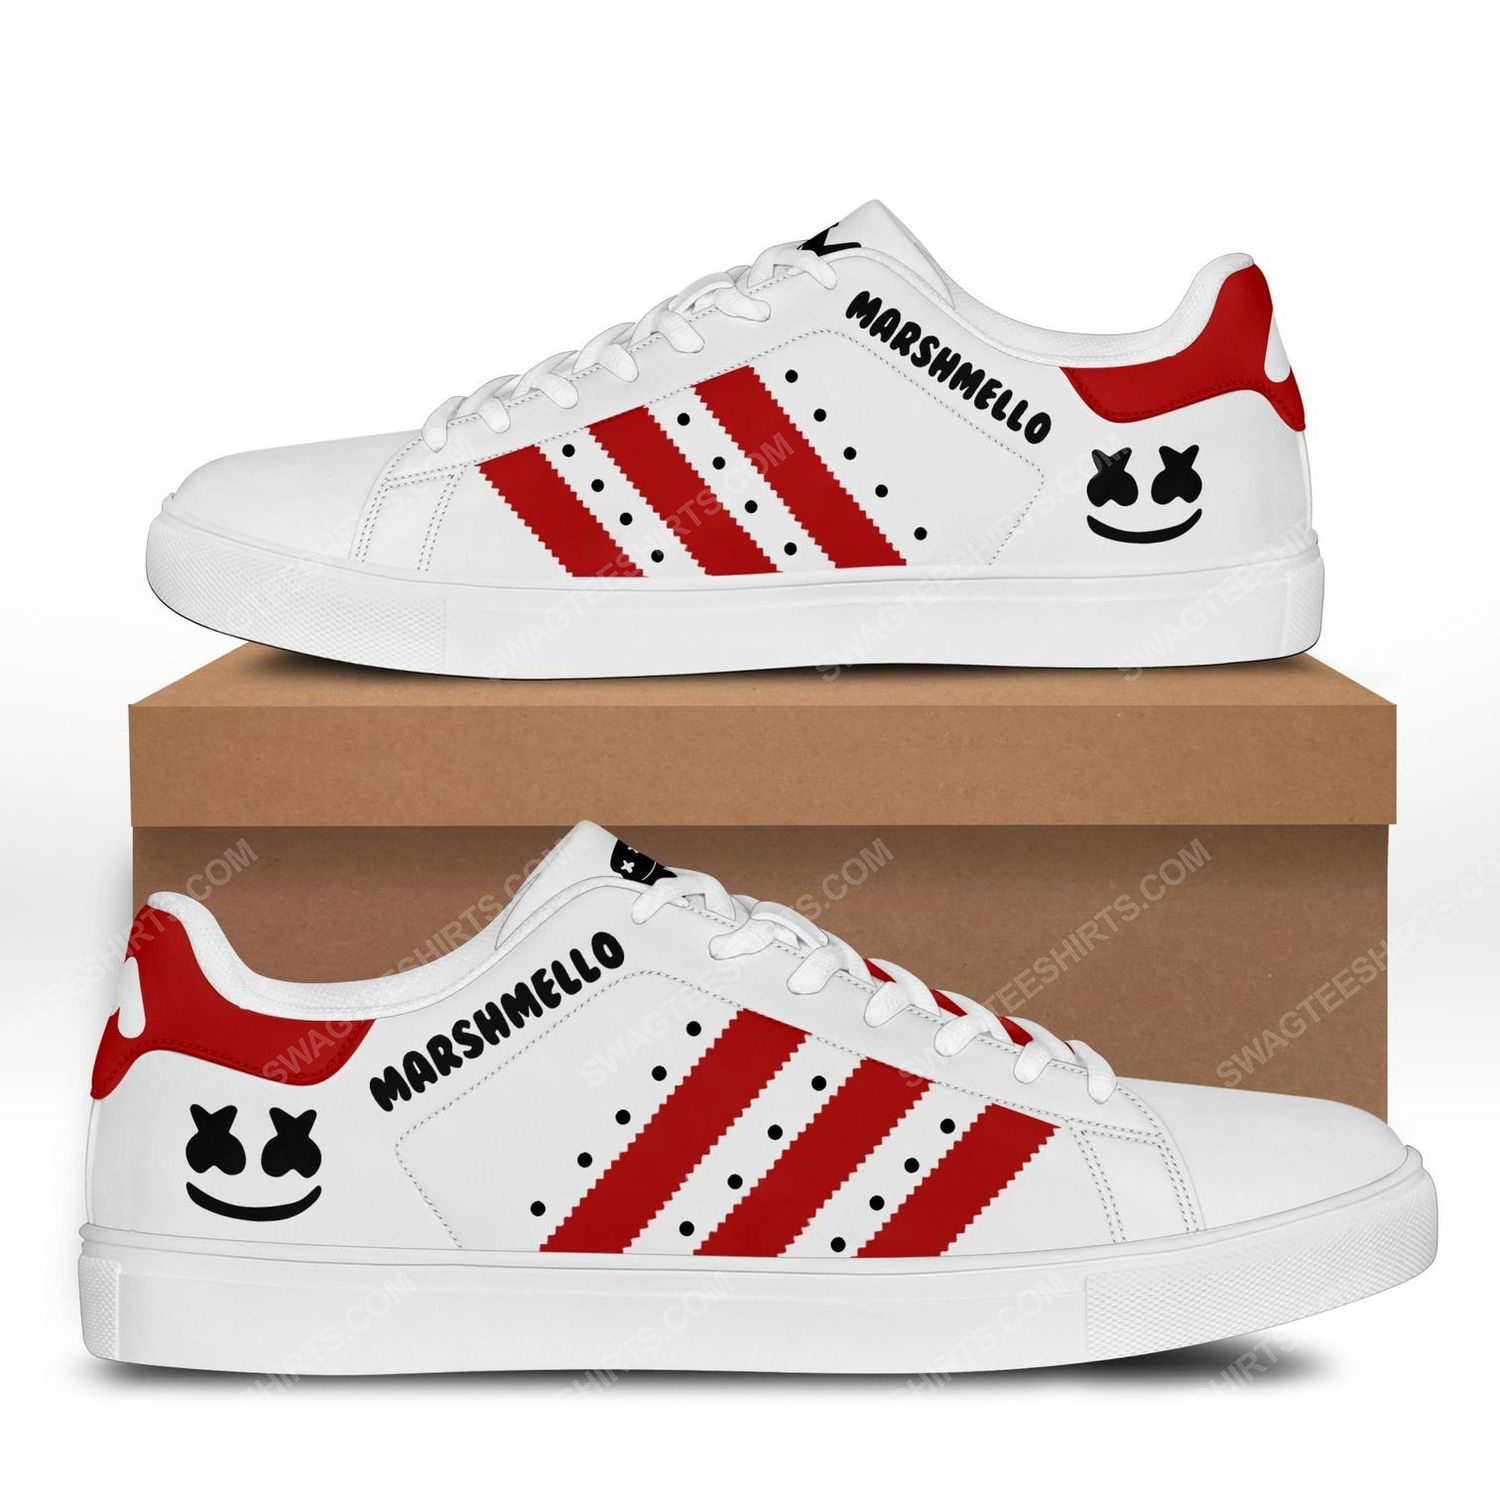 Marshmello american electronic music version red stan smith shoes 3